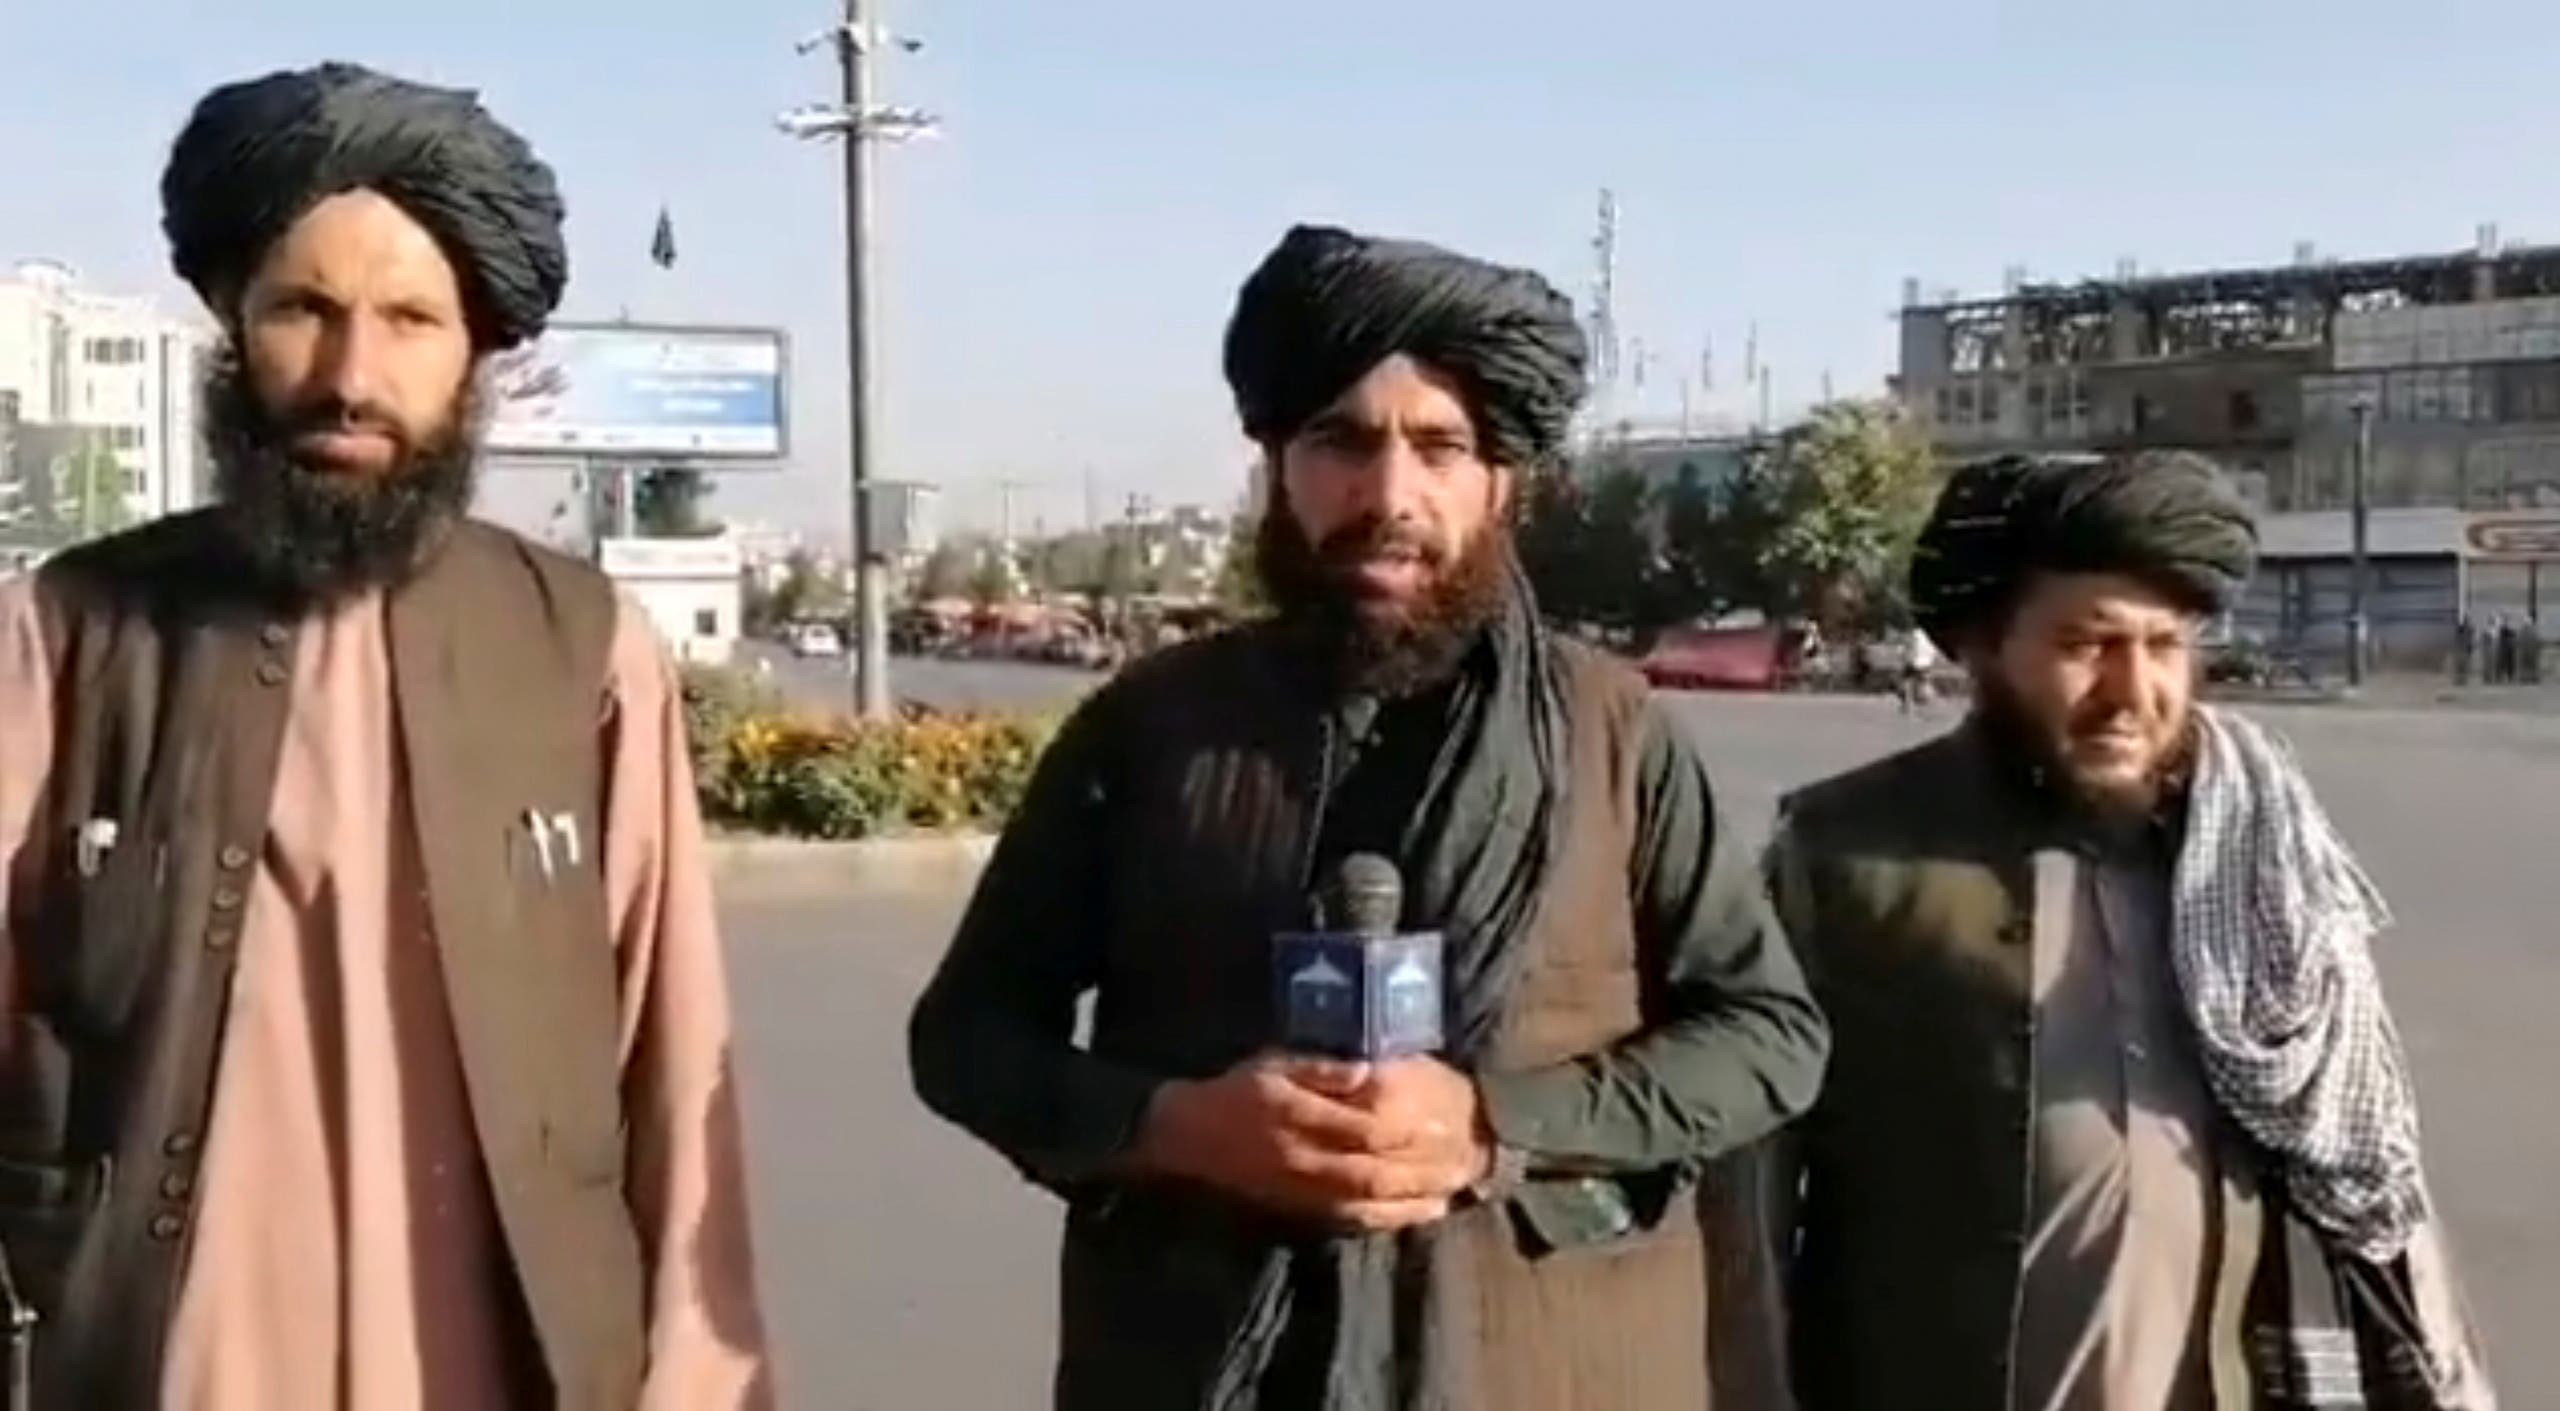 A man, who purportedly is a Taliban militant, holds a wireless microphone as he speaks on the street in Kabul, Afghanistan. (A still image taken from social media video uploaded August 16, 2021 and obtained by Reuters) .